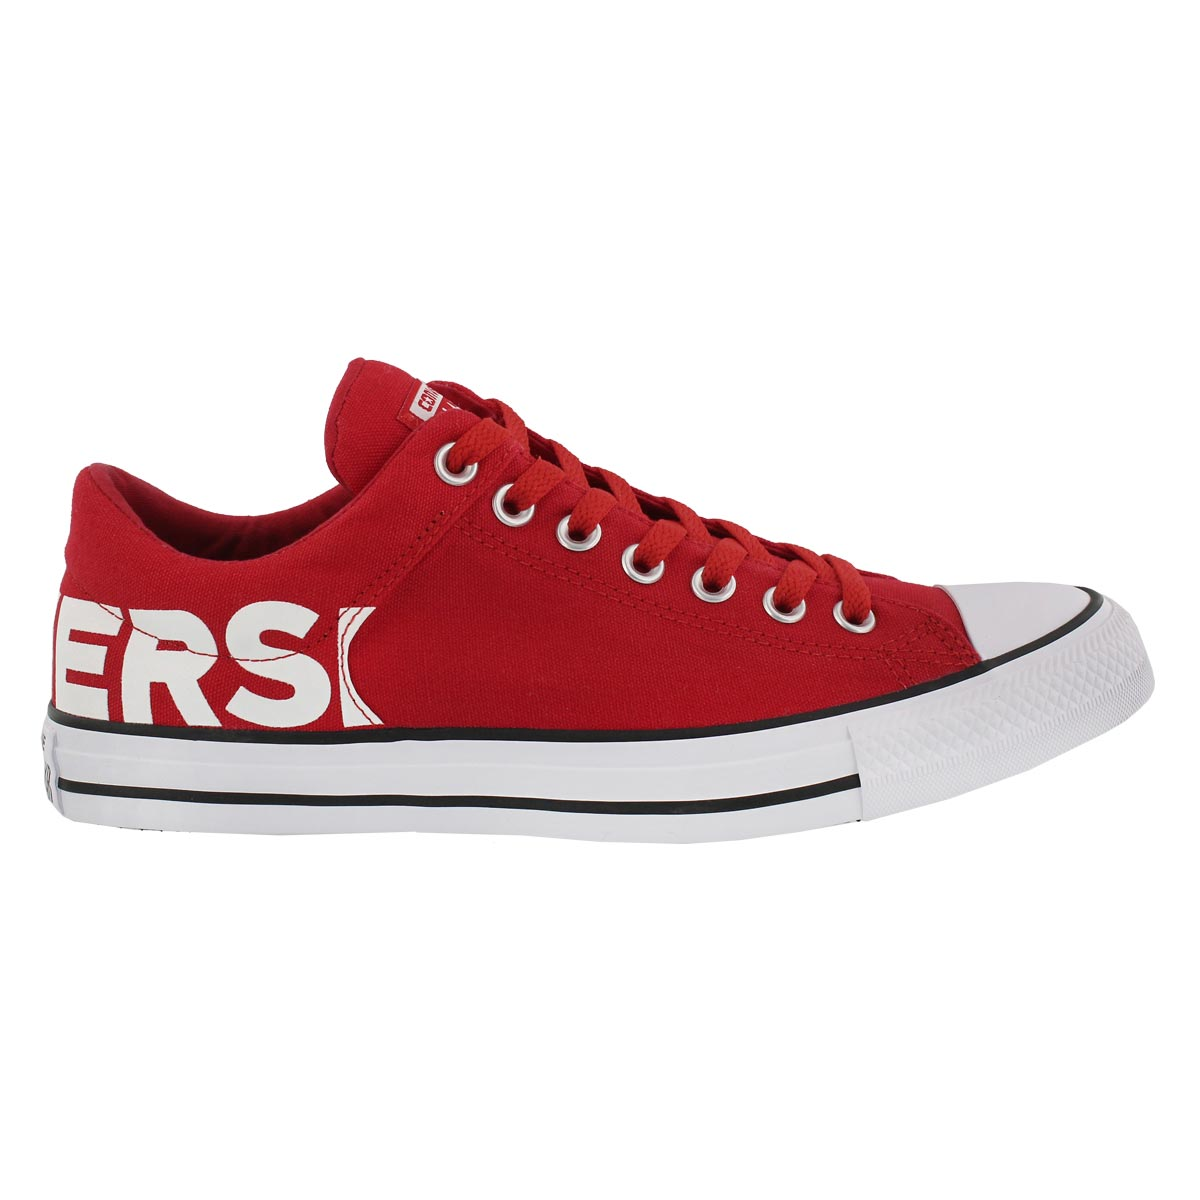 Mns CTAS Wordmark red/white sneaker